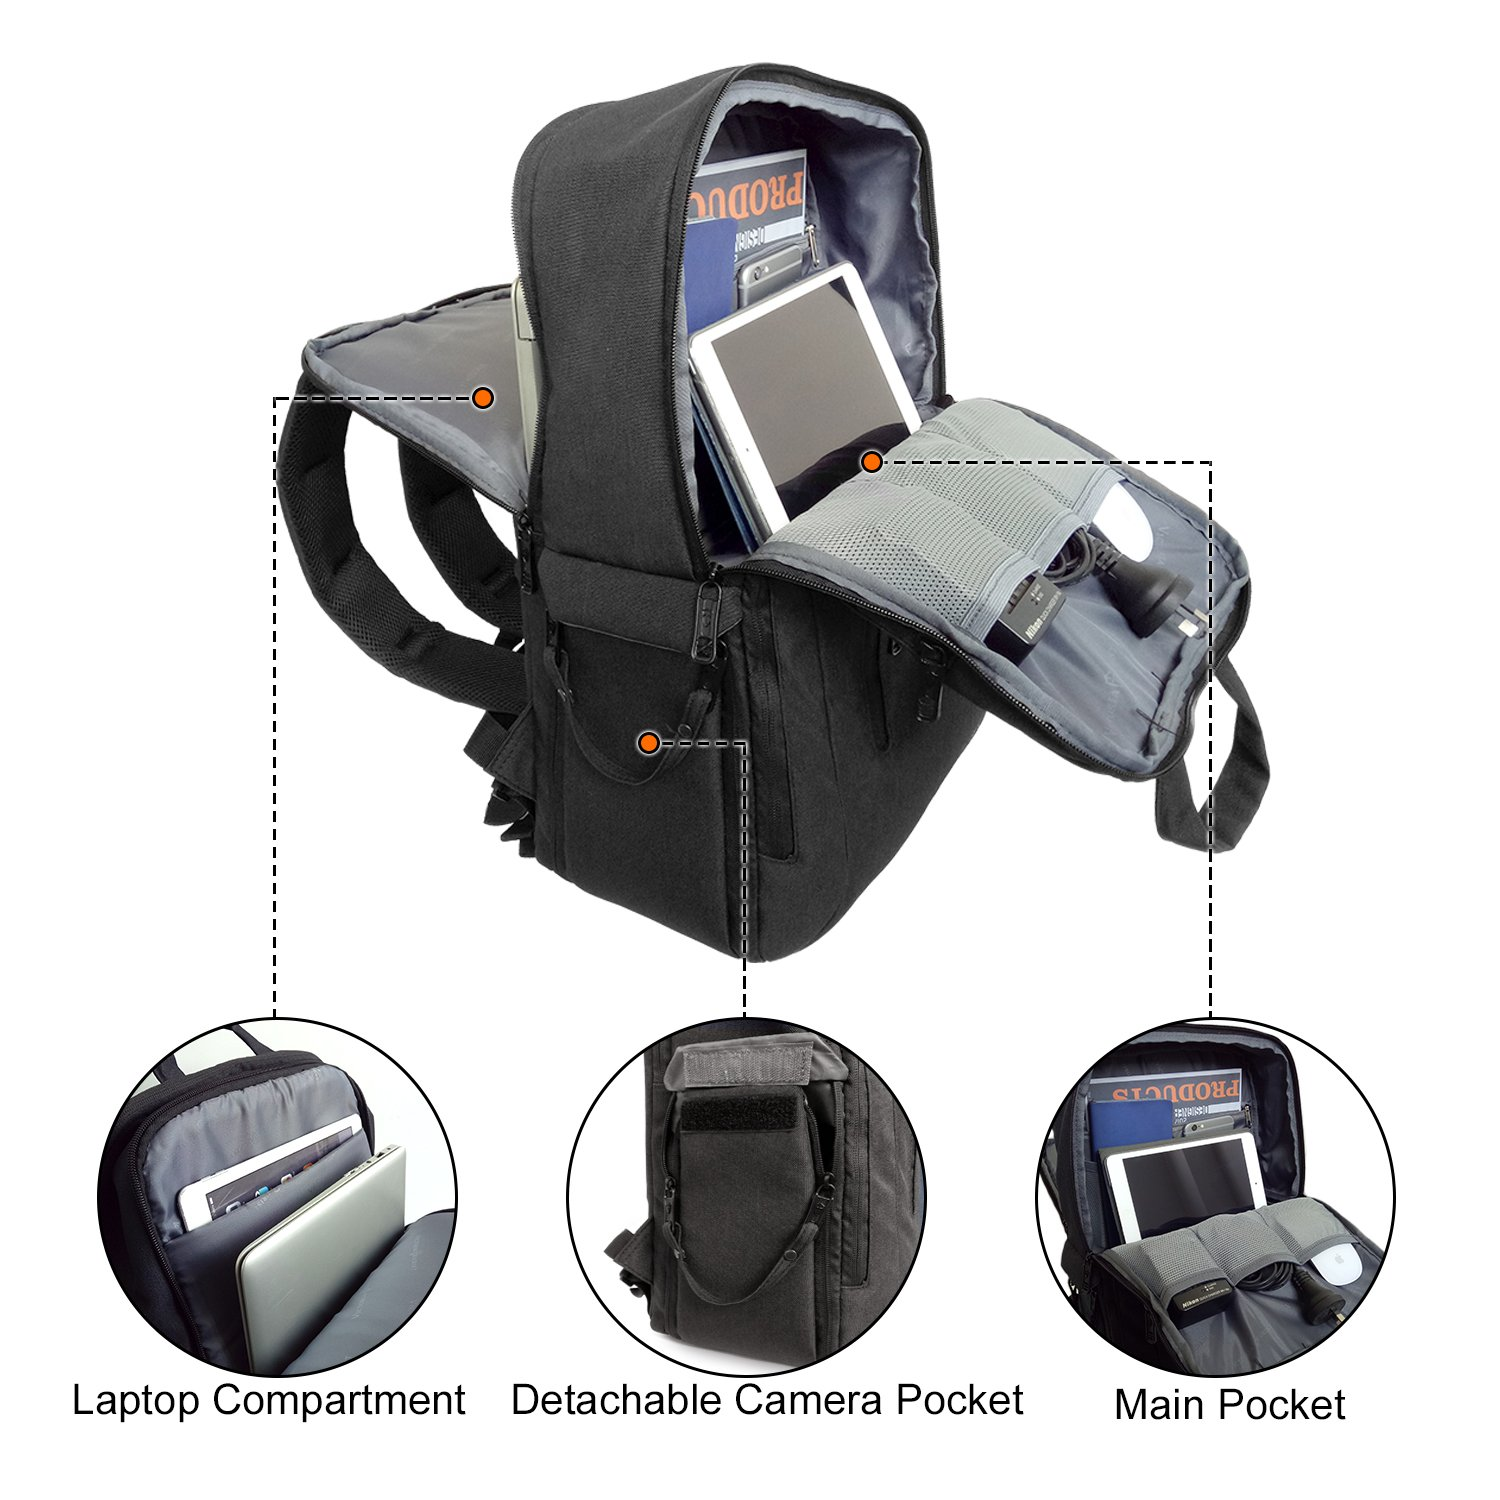 70a12b6d97 Victoriatourist DSLR Camera Backpack Multifunctional Travel Laptop Rucksack  for 16 Inch laptop Lens Tripod with Waterproof